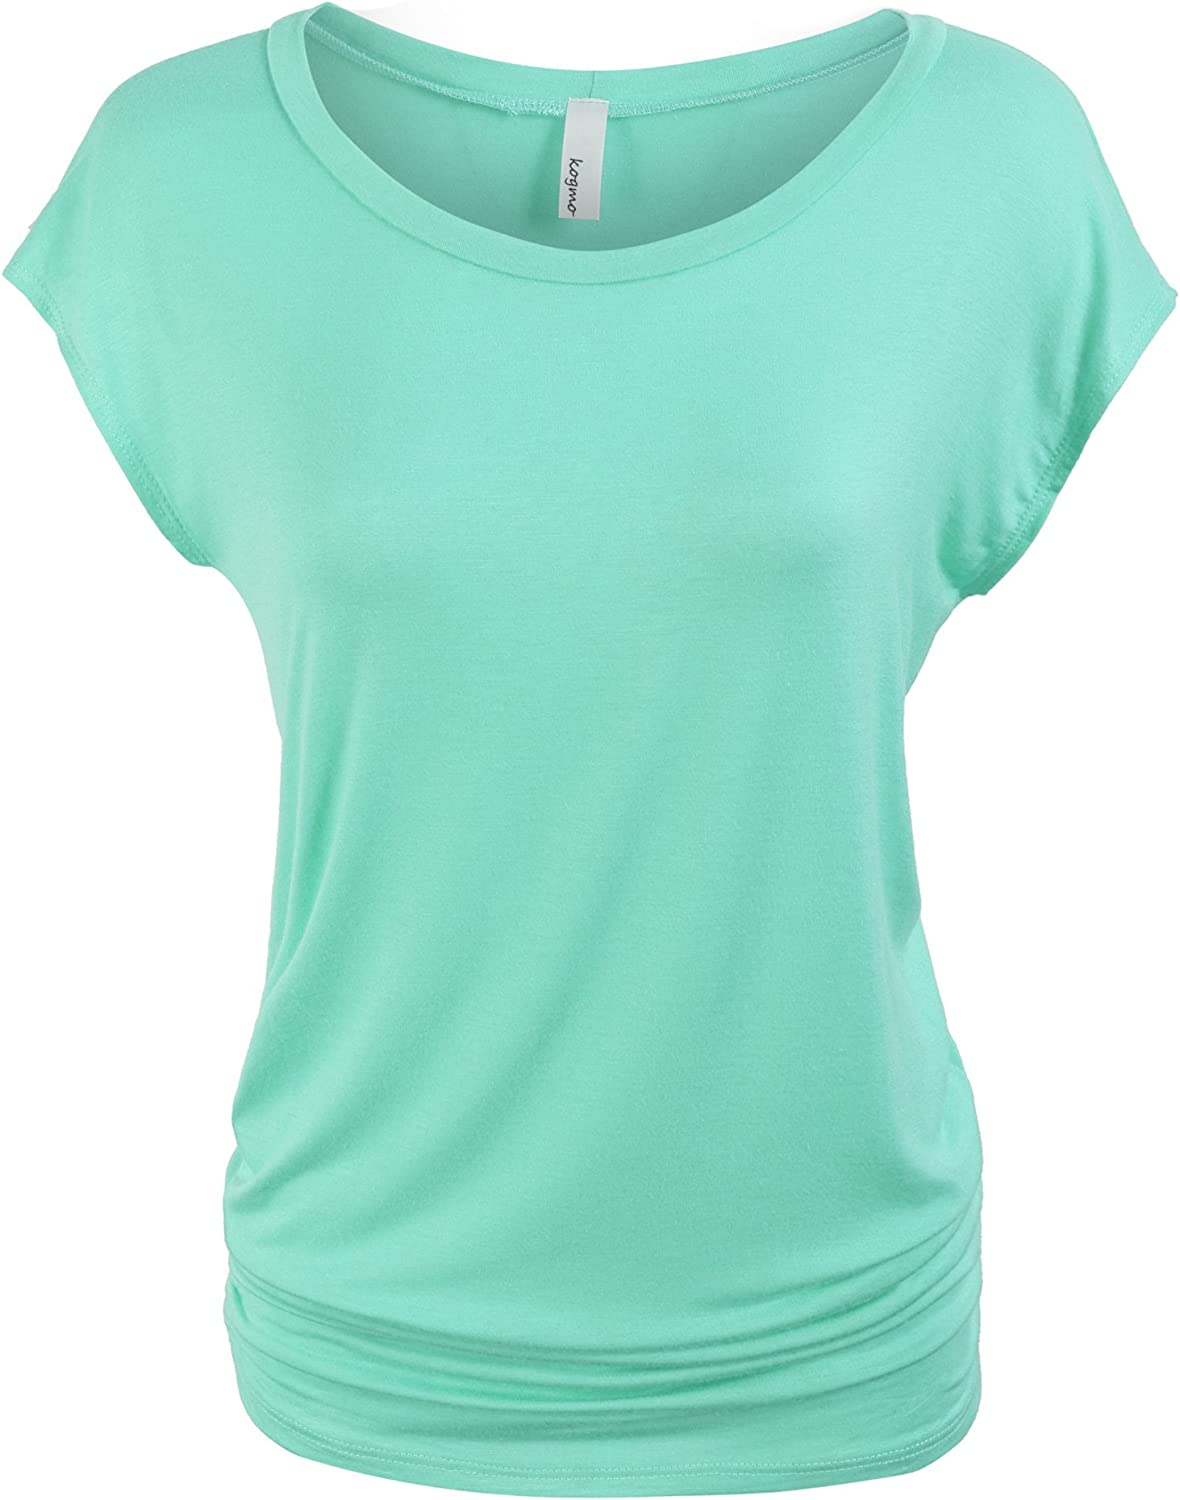 KOGMO Womens Short Sleeve Solid Basic Tunic Top Tee with Side Shirring3XMINT